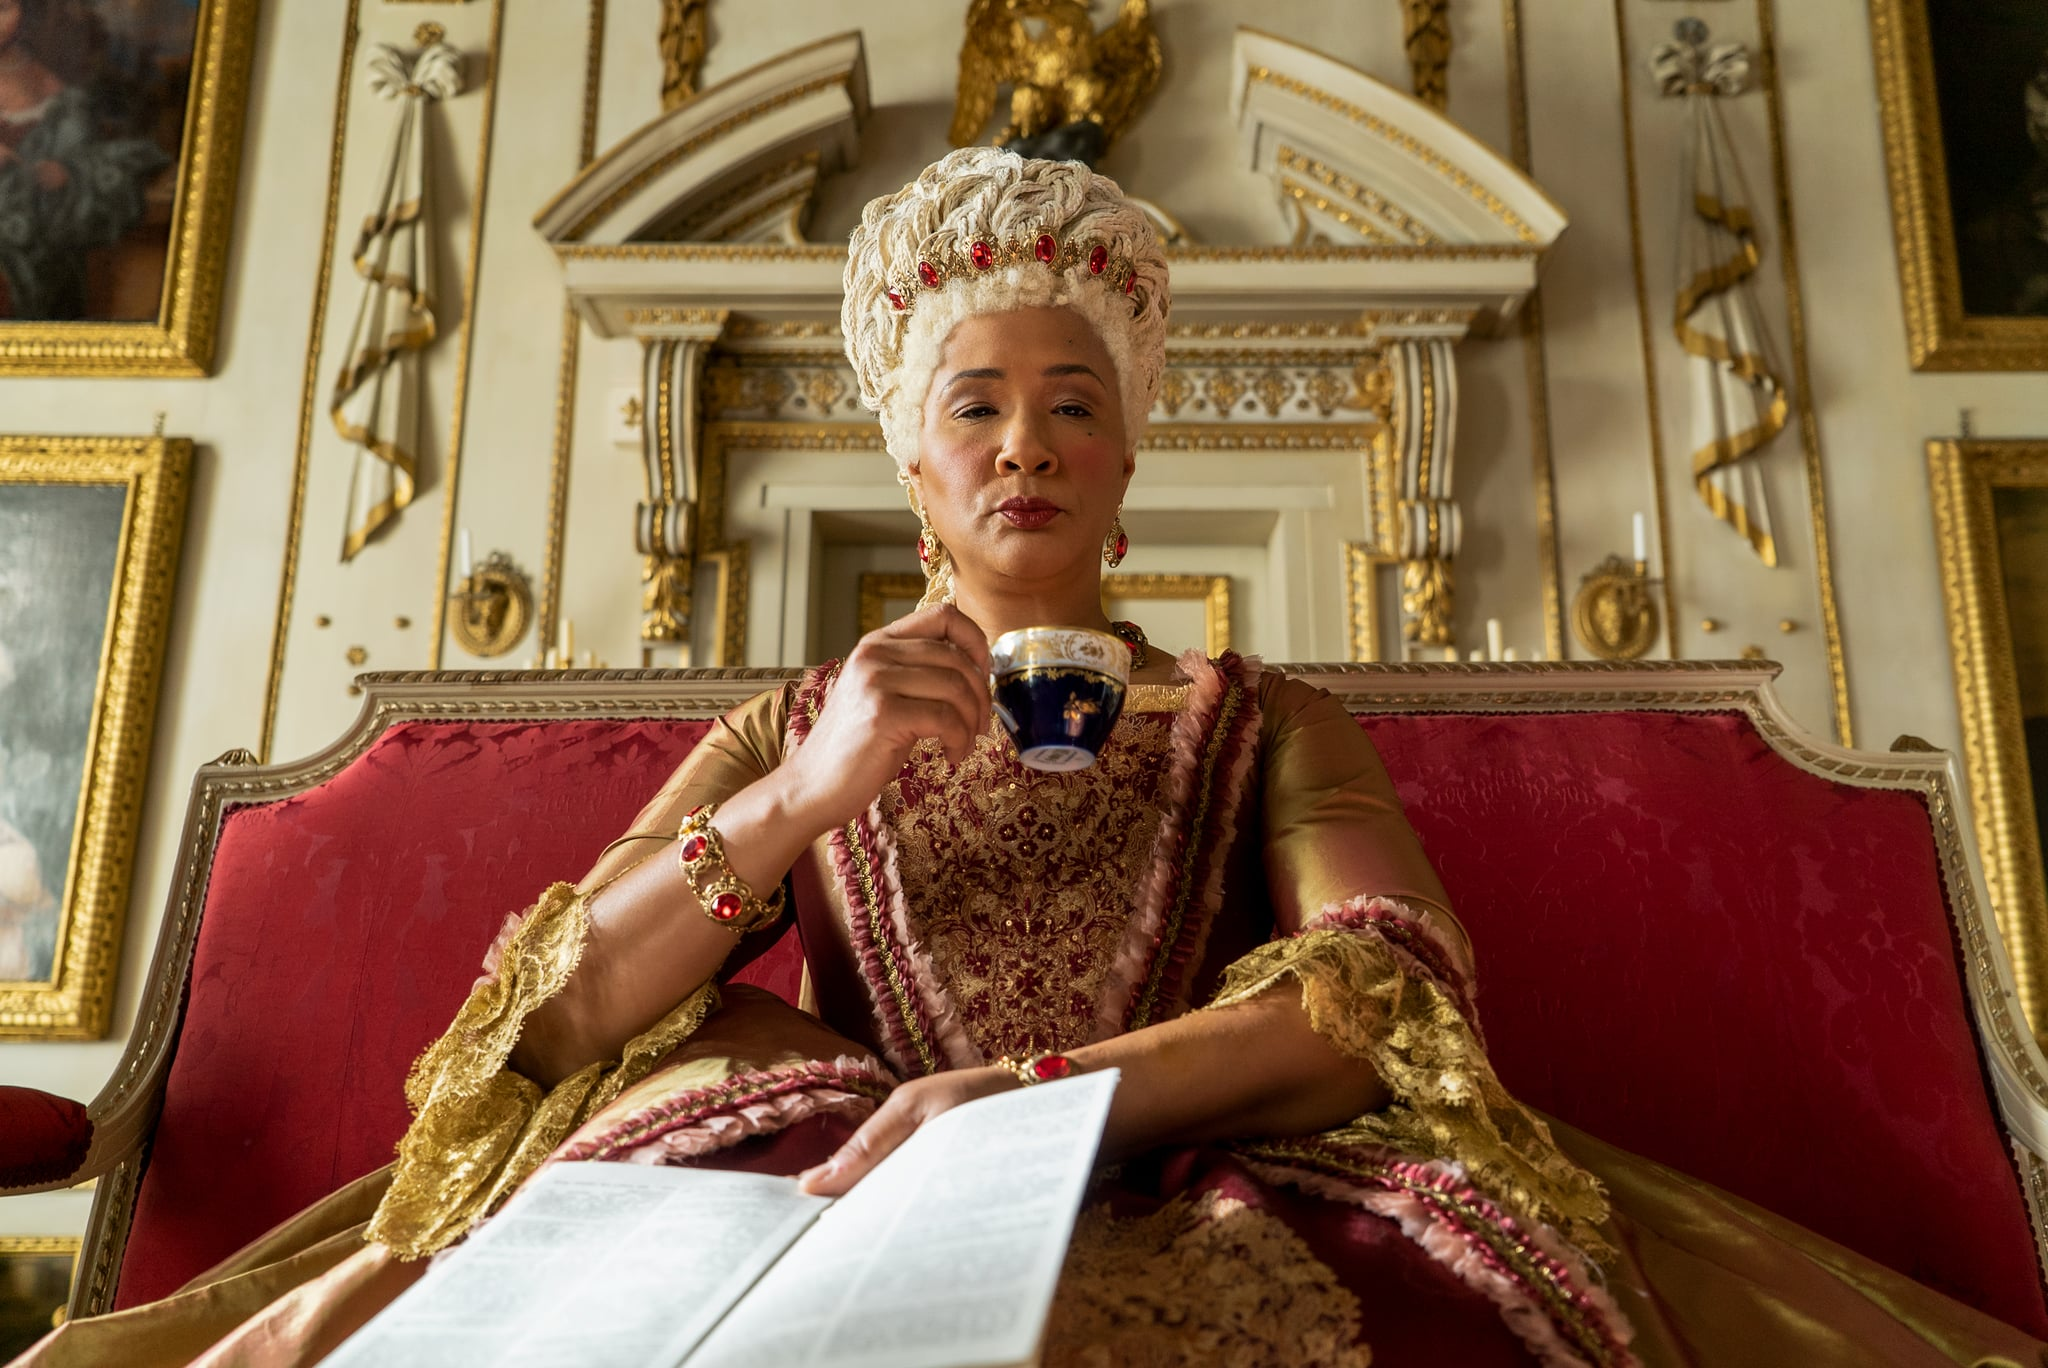 BRIDGERTON GOLDA ROSHEUVEL as QUEEN CHARLOTTE in episode 105 of BRIDGERTON Cr. LIAM DANIEL/NETFLIX  2020